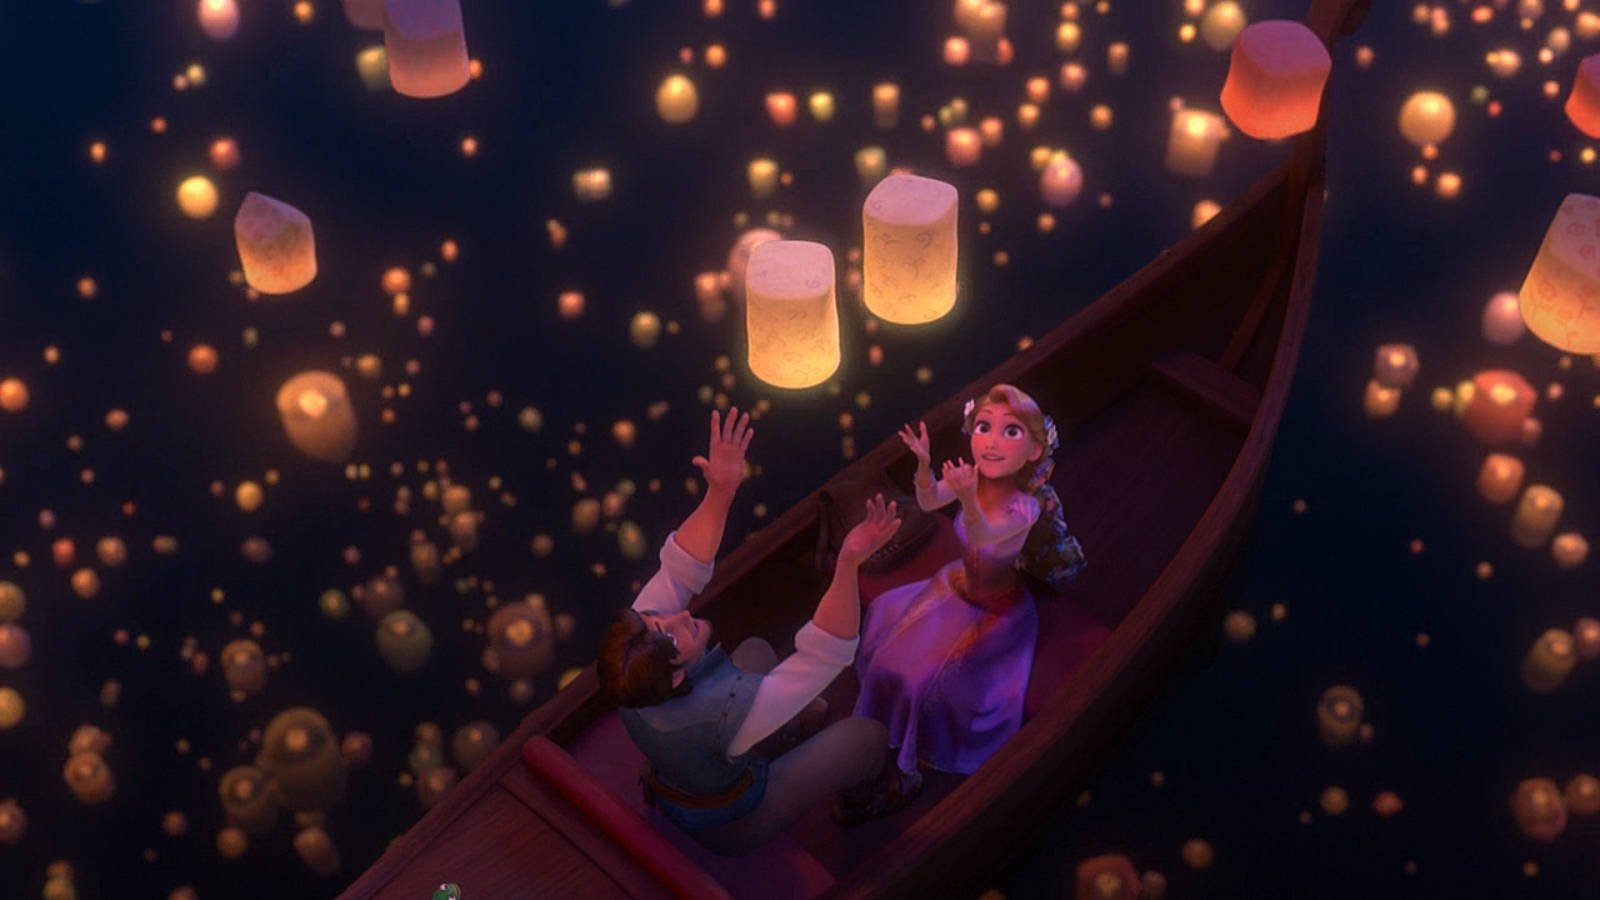 Tangled 1600900 Wallpaper 1120481 1600x900